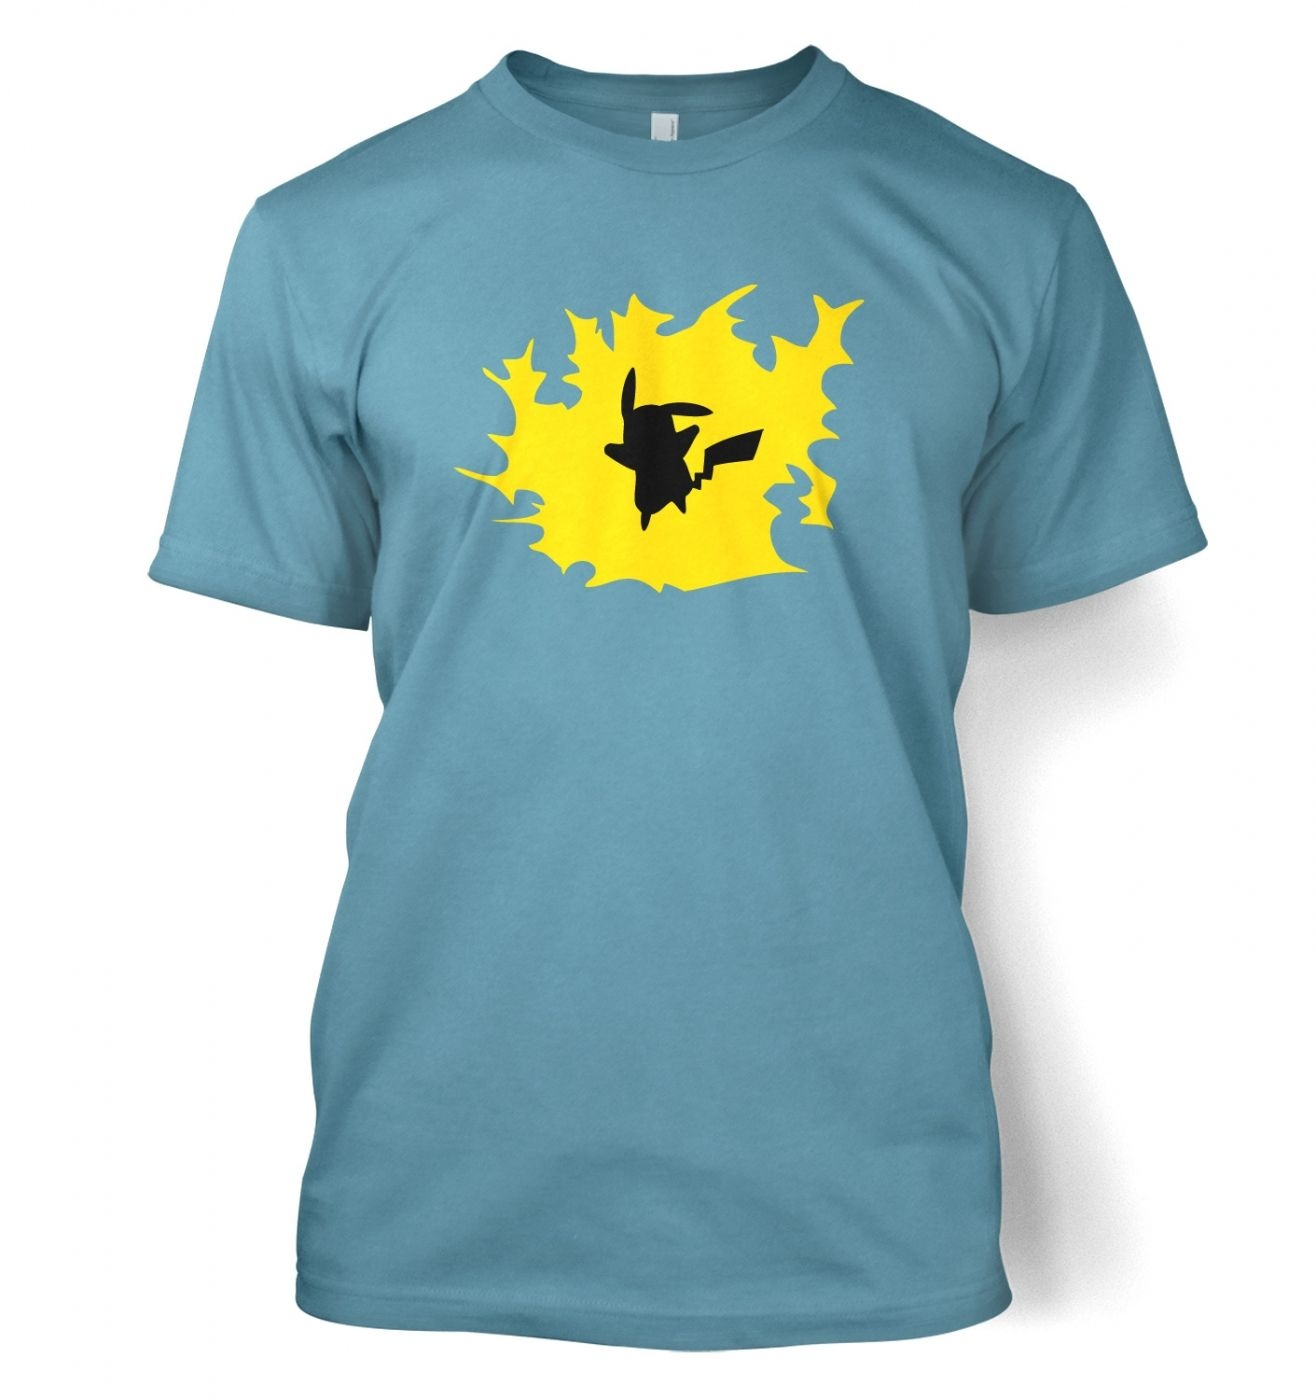 Yellow Pikachu Silhouette T-Shirt - Inspired by Pokemon